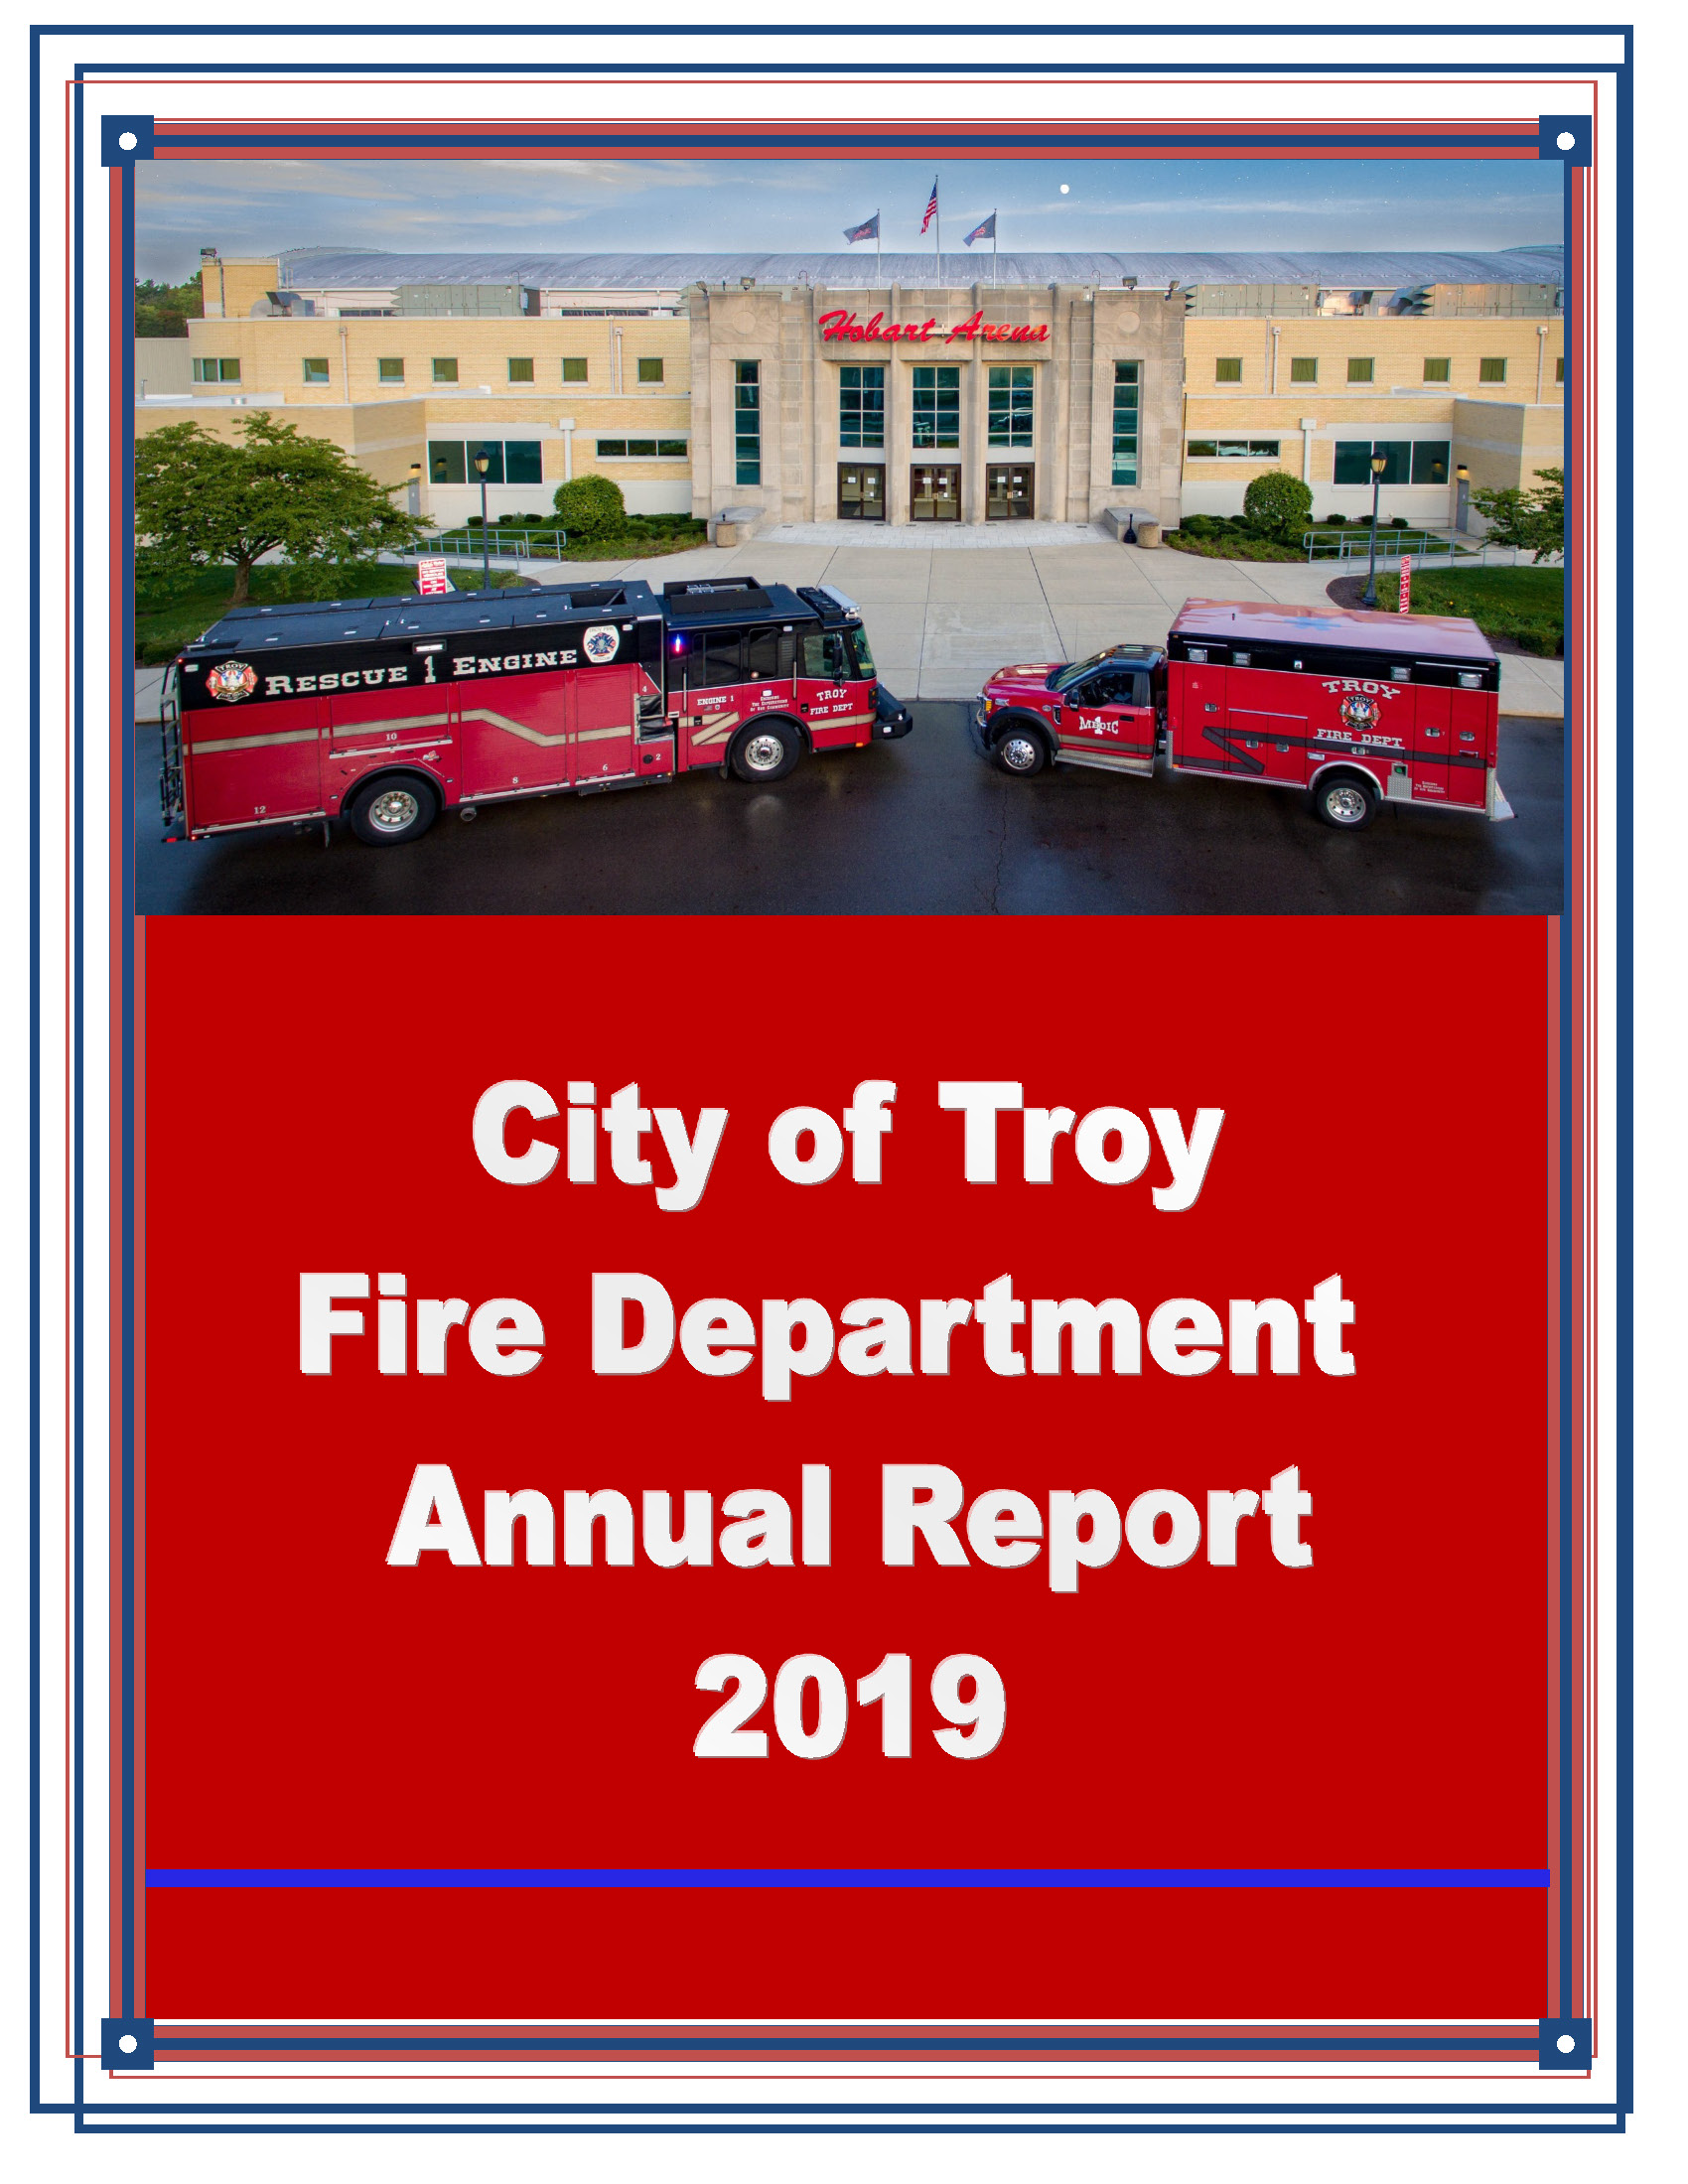 2019 Annual Report Graphic